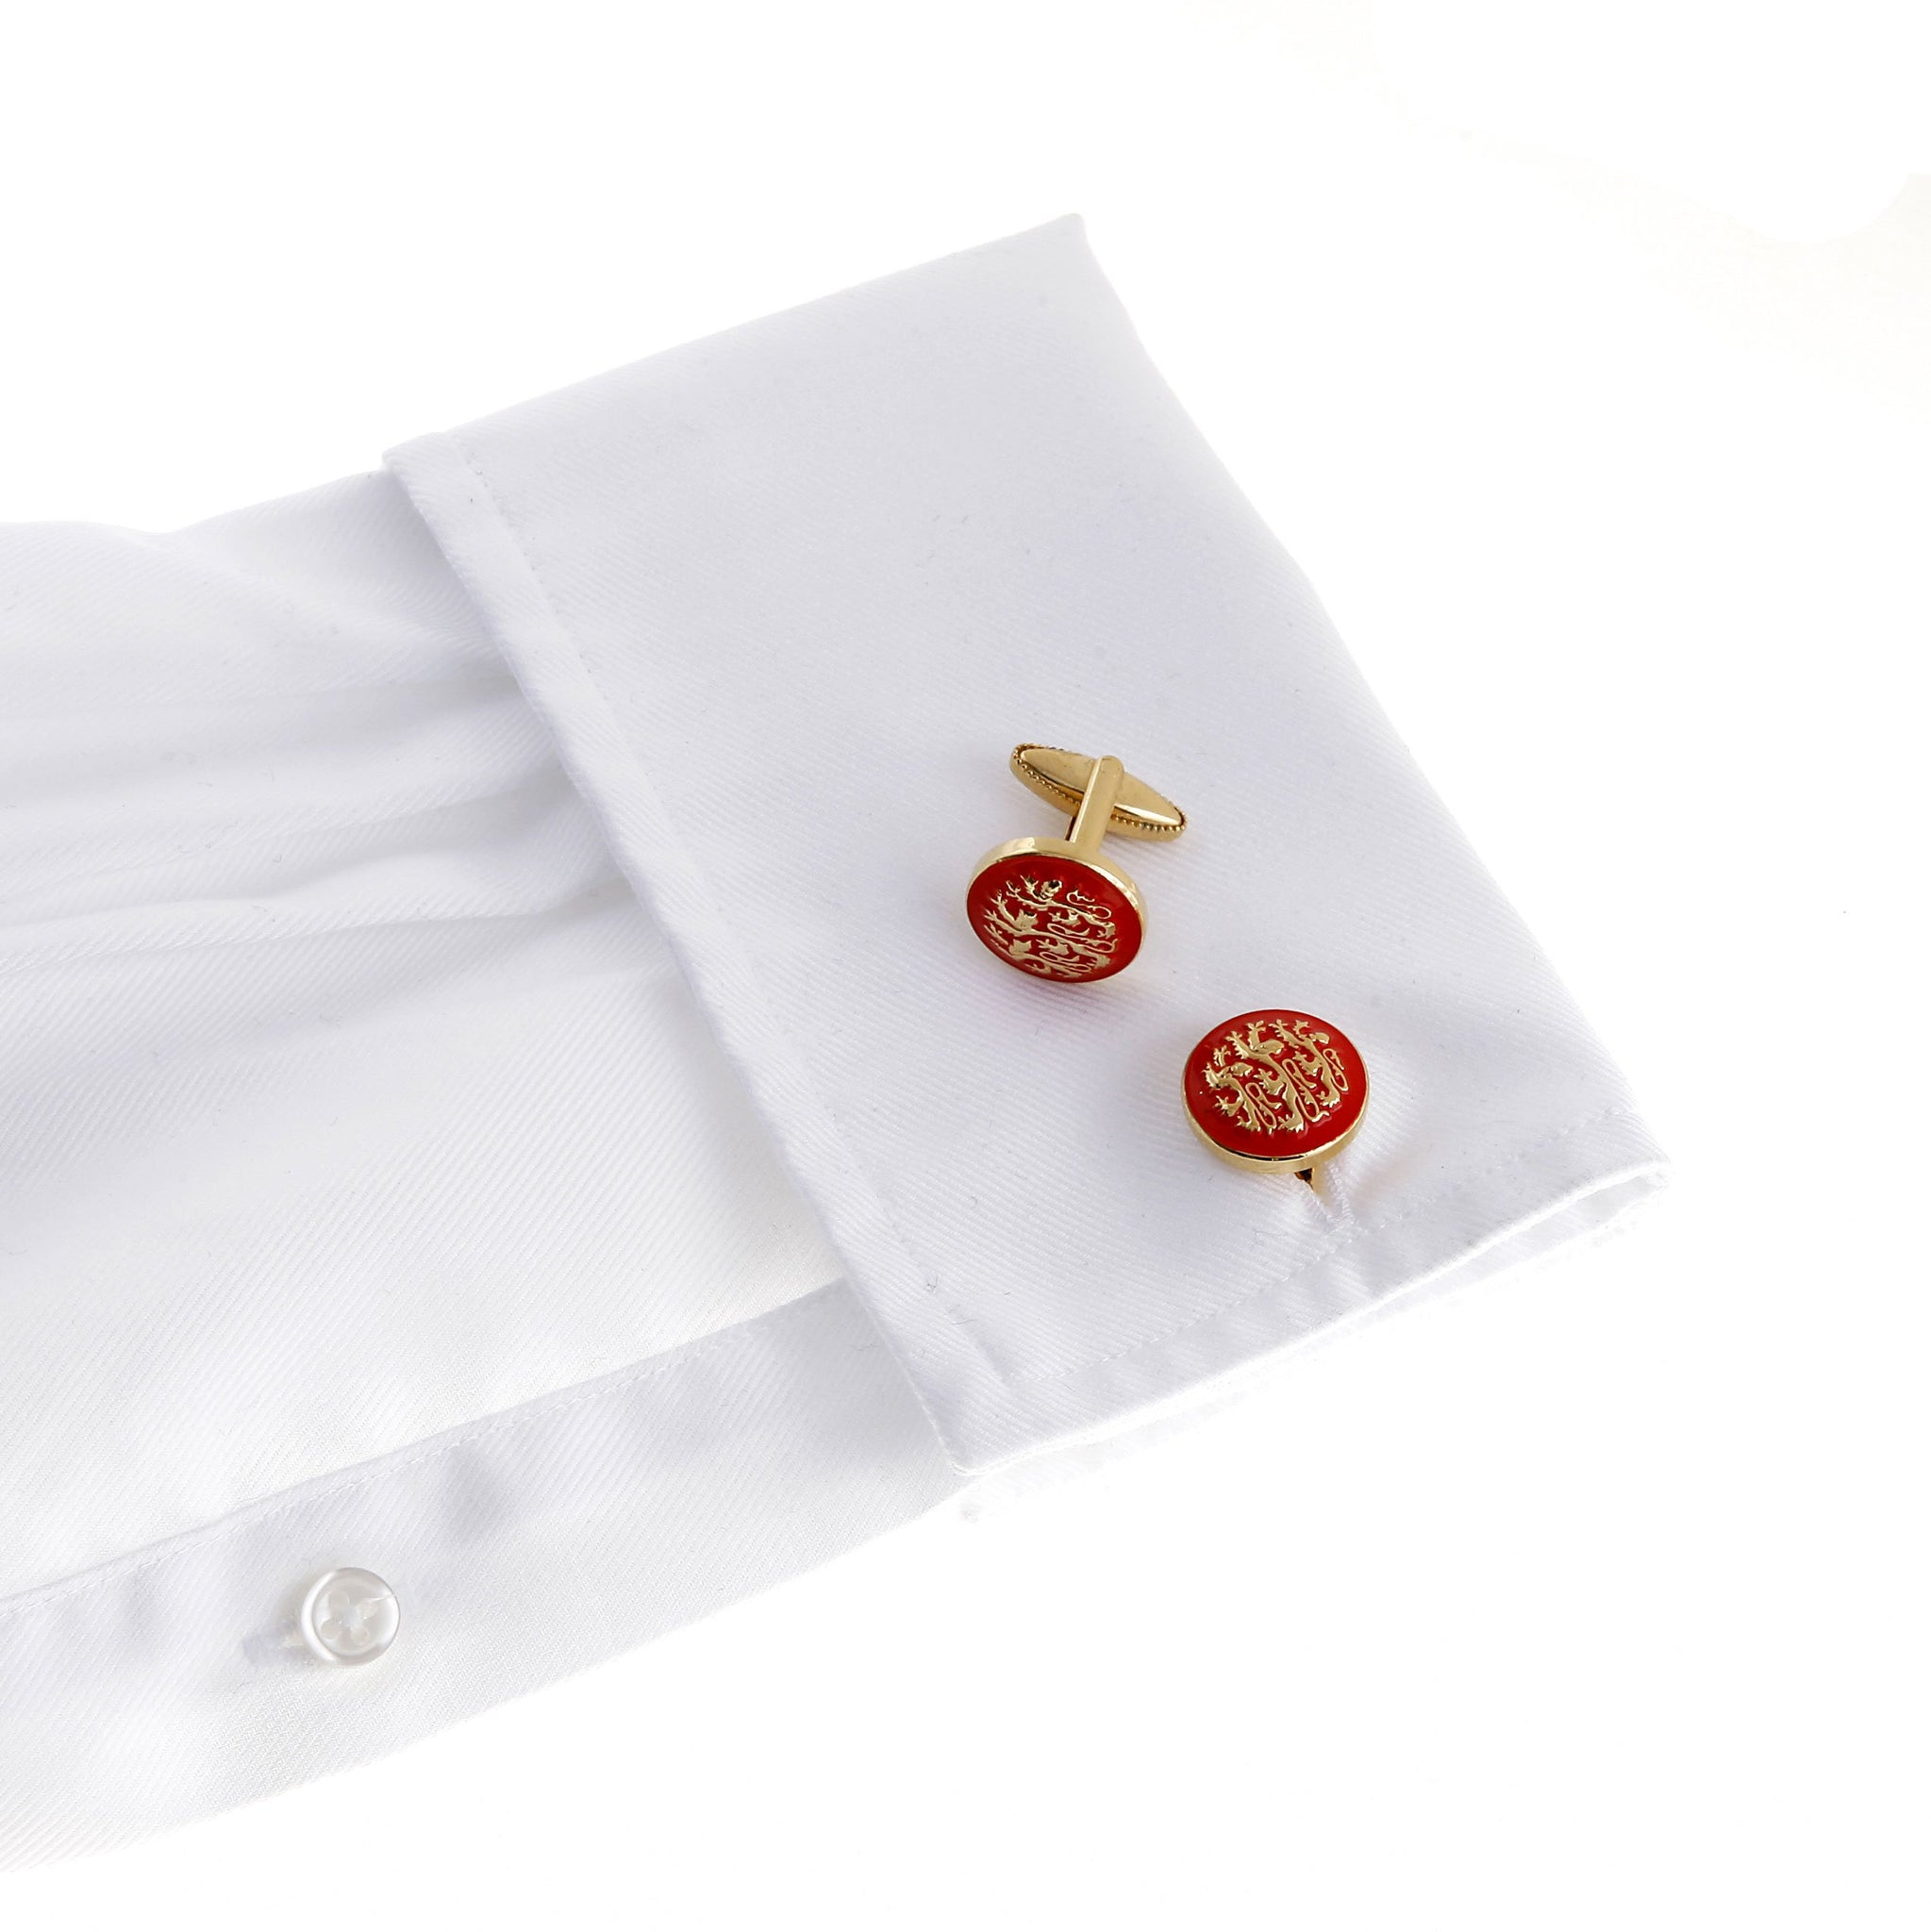 Three English Lions Cufflink - Wimbledon Cufflink Company